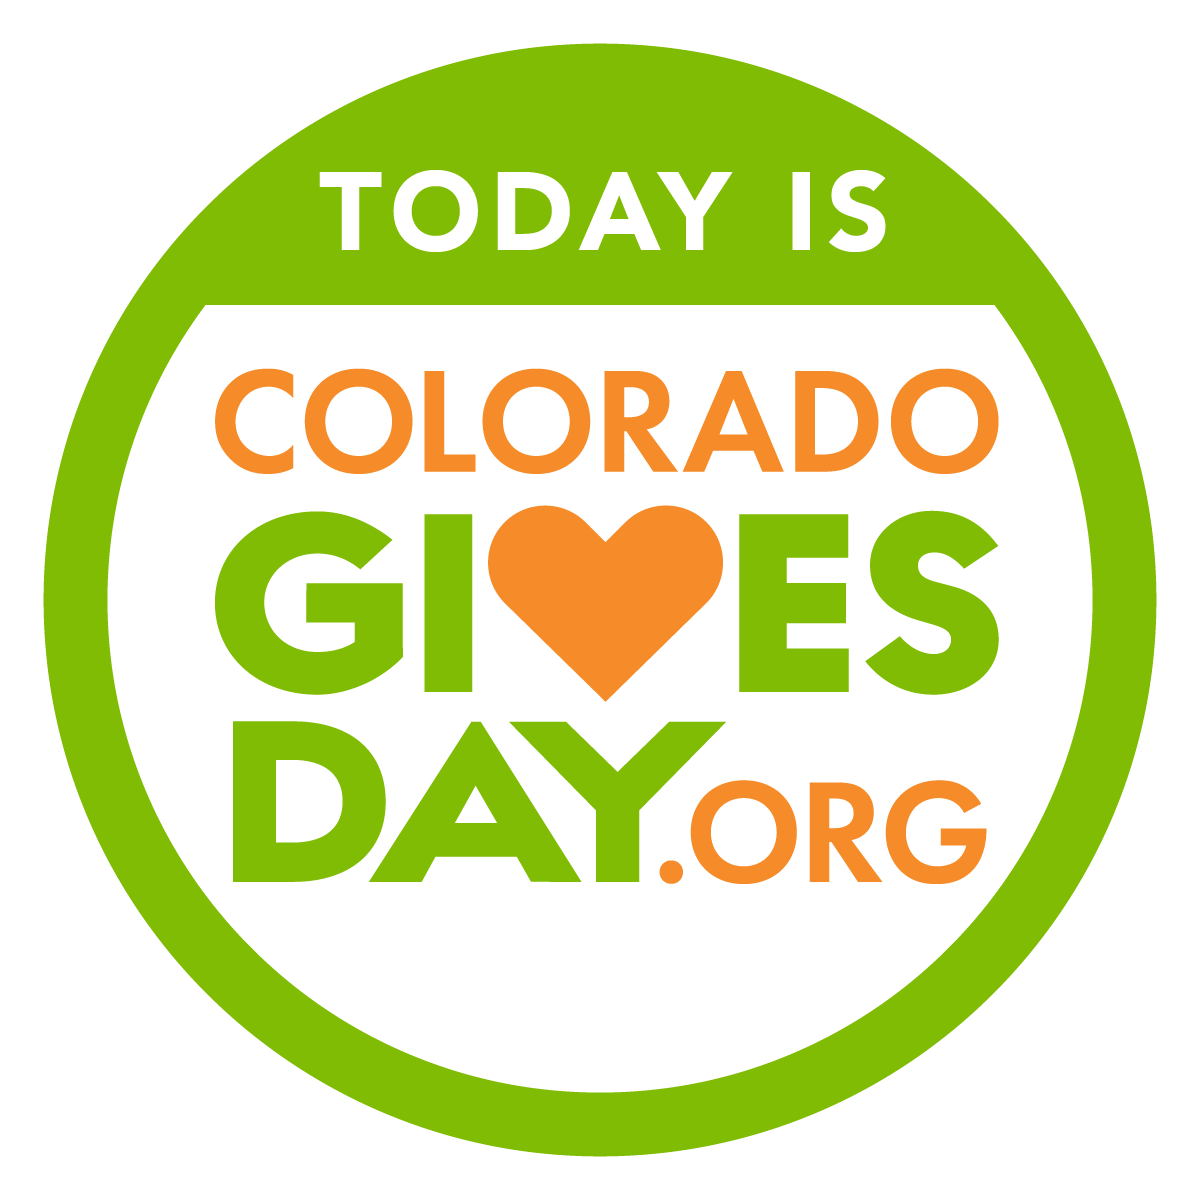 Today is Colorado Gives Day Badge